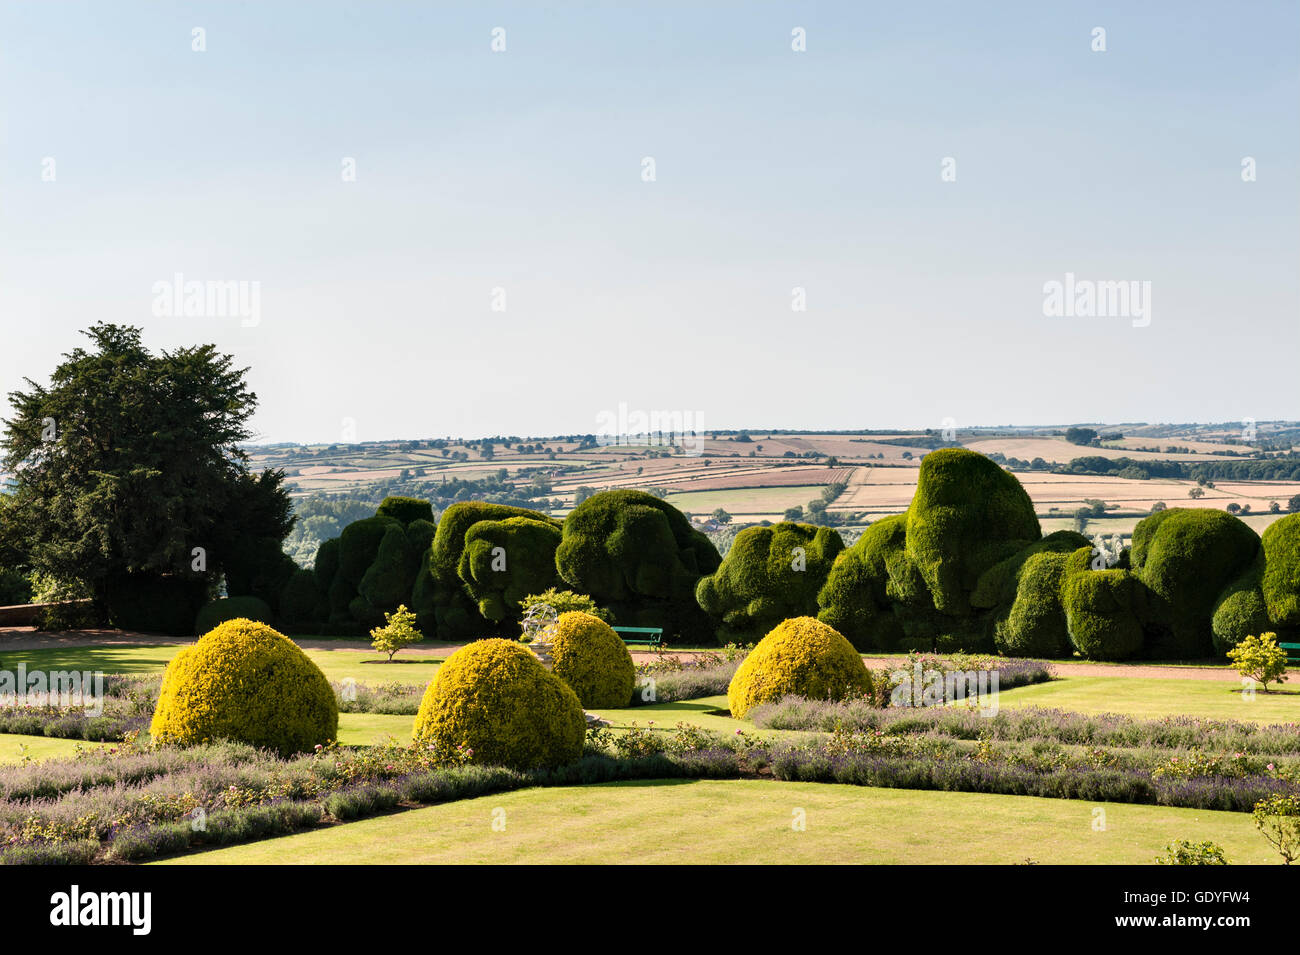 Rockingham Castle, Corby, Northamptonshire, UK. The formal 17c 'Cross Garden' with the 400 year old yew - Stock Image